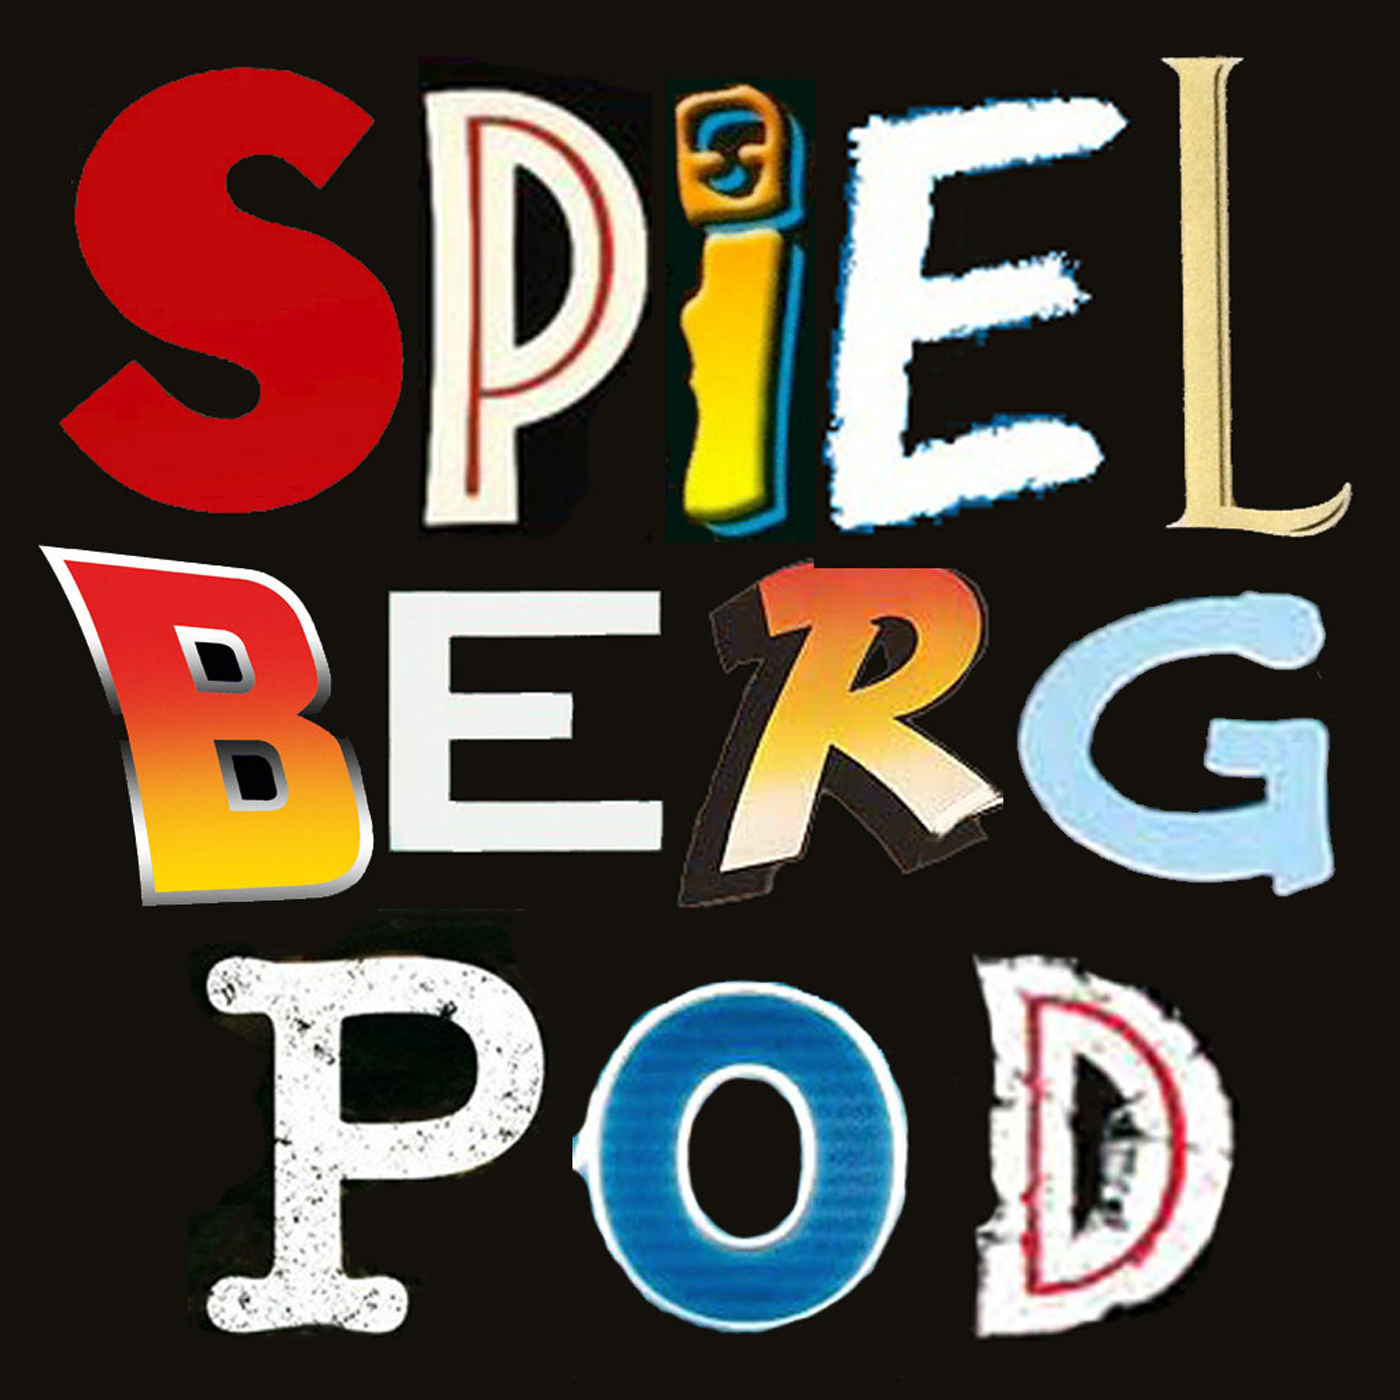 SpielbergPod - The Steven Spielberg Film Podcast show art